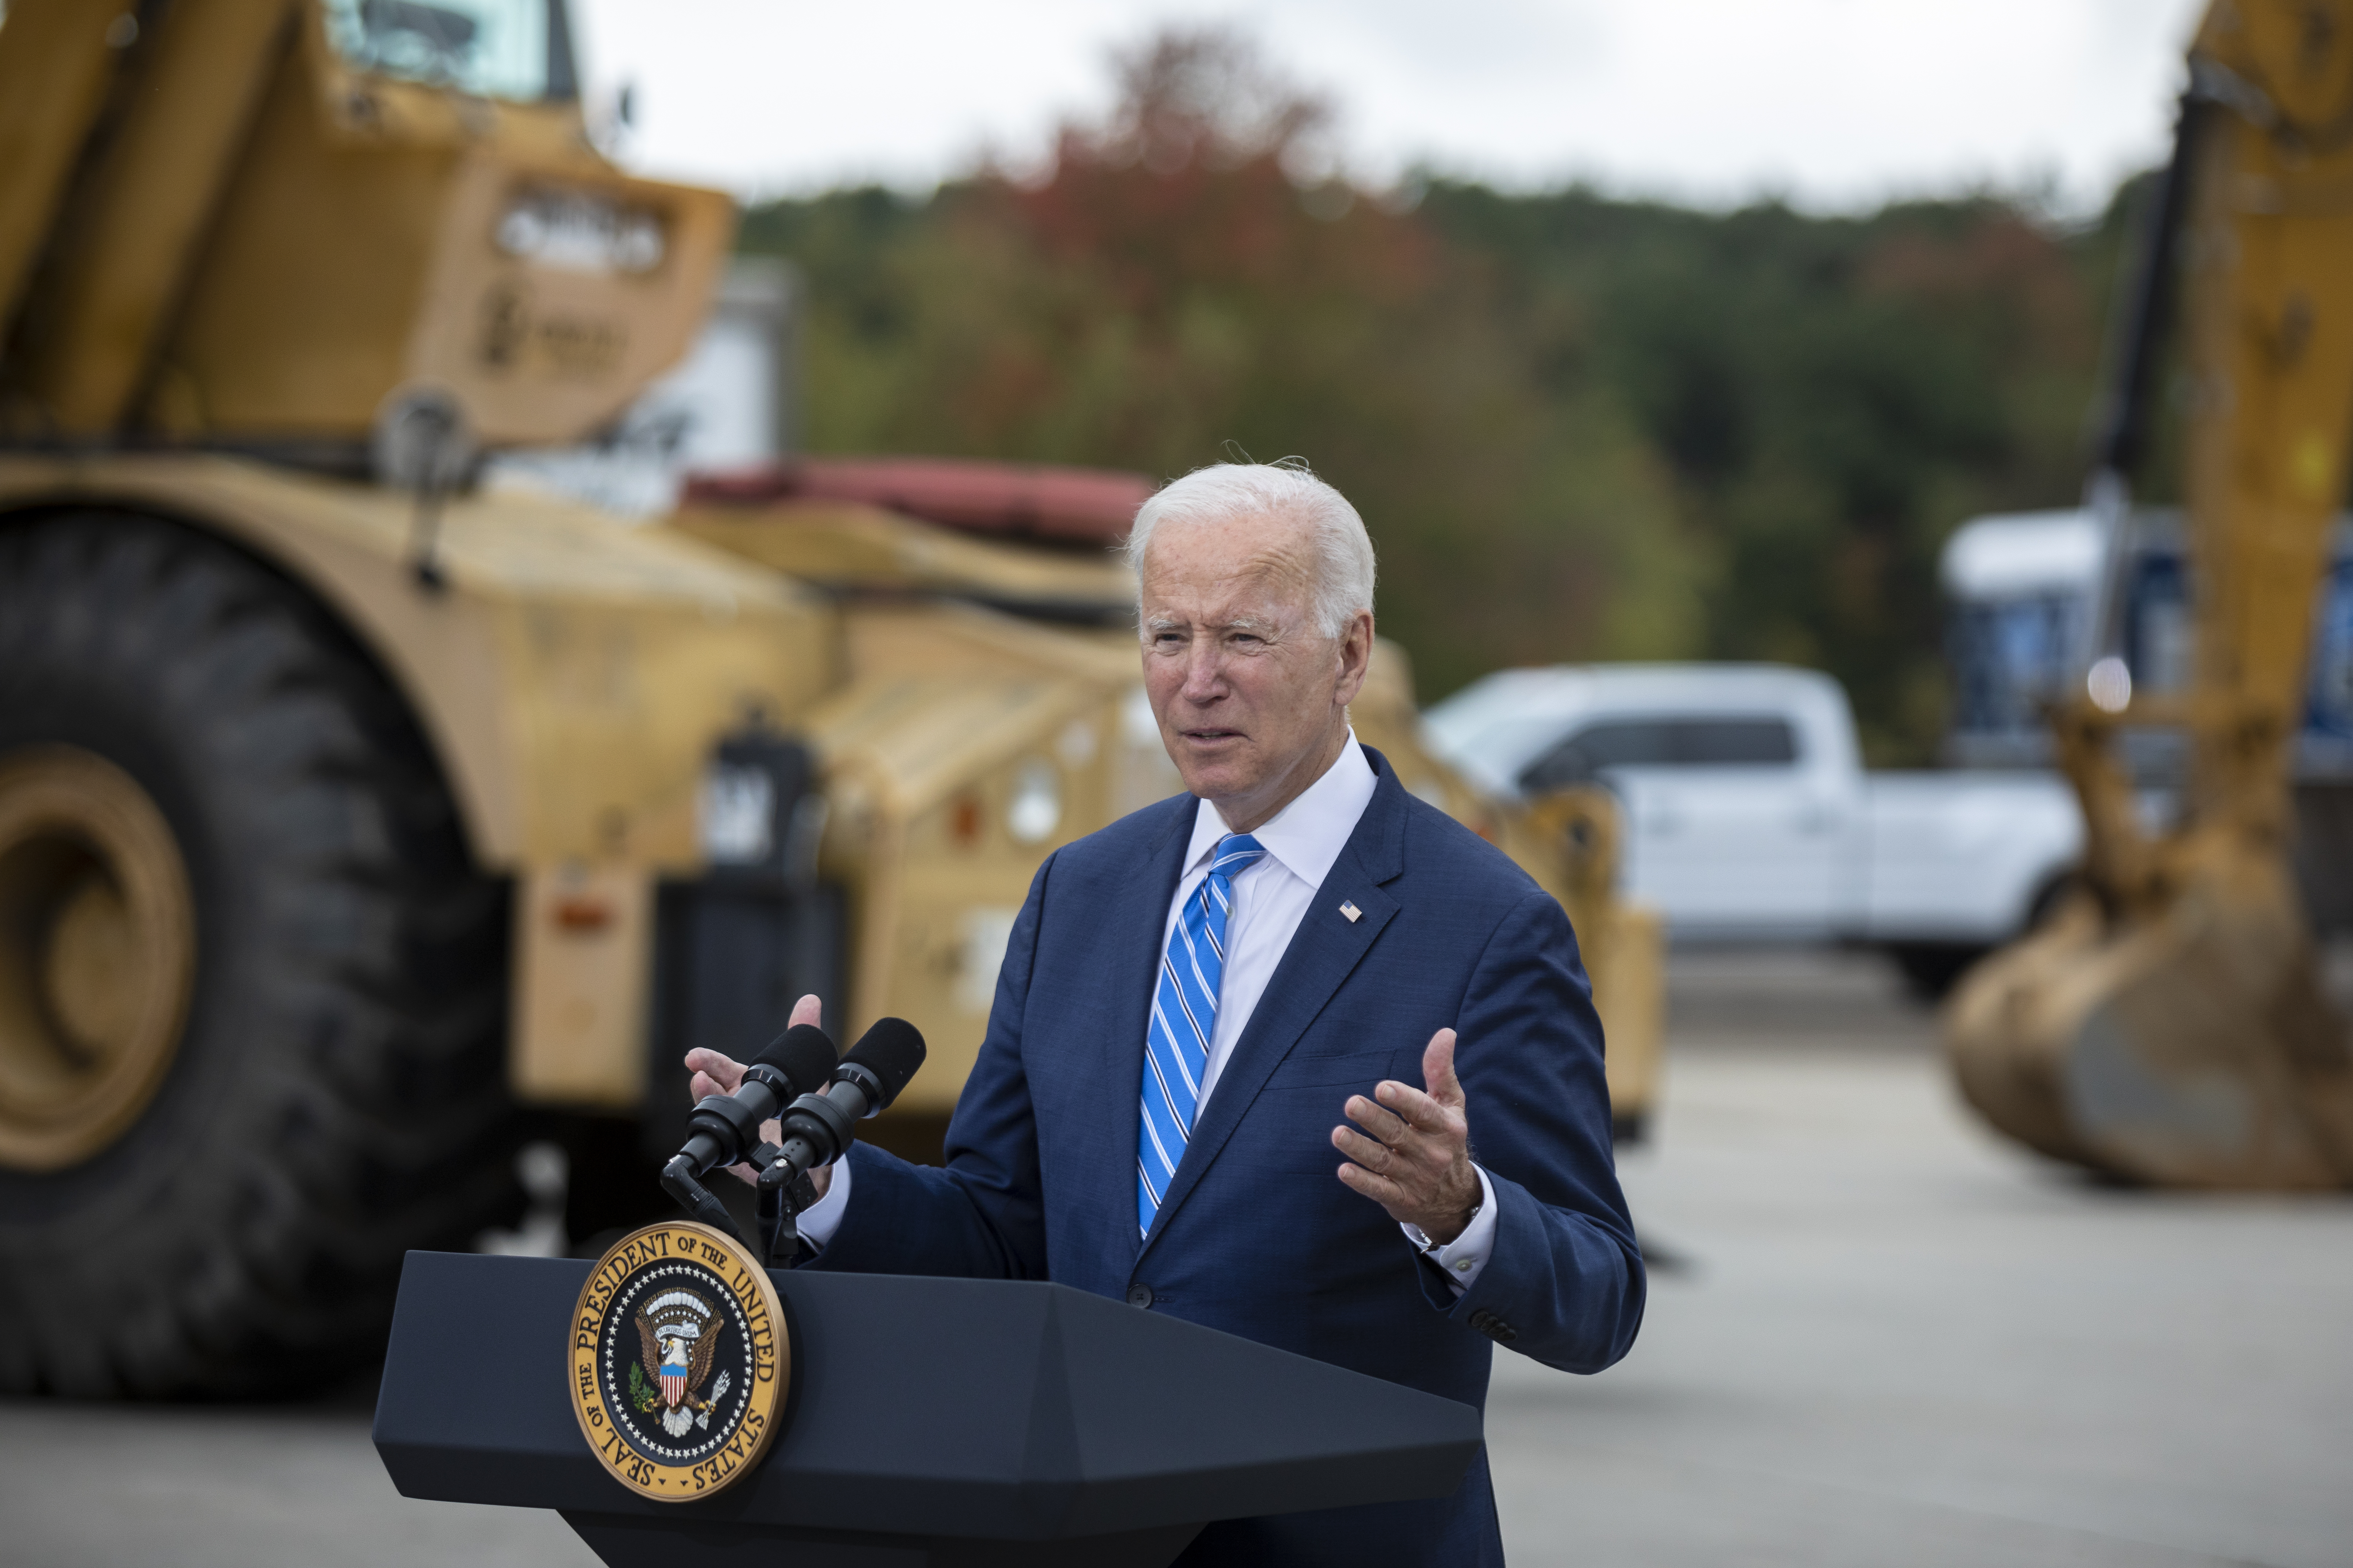 U.S. President Joe Biden speaks at the International Union of Operating Engineers Local 324 on October 5, 2021 in Howell, Michigan. Biden spoke about his infrastructure bill and the Build Back Better plan.